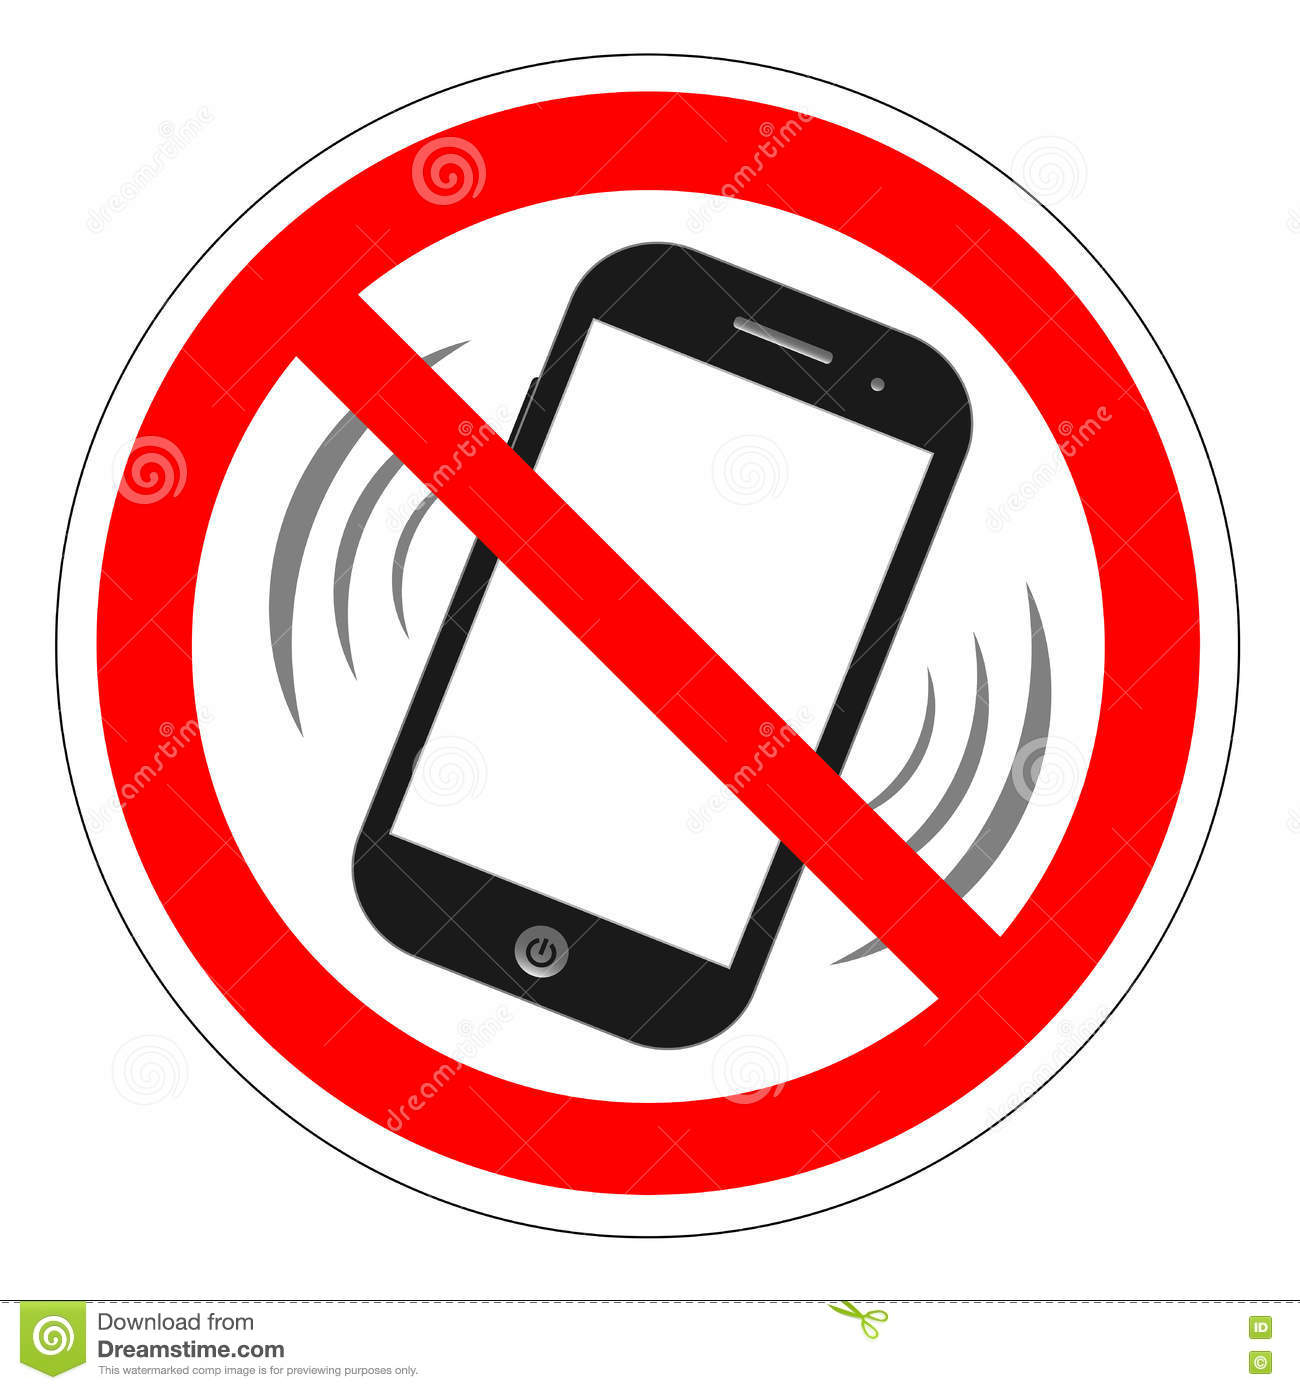 No cell phone sign. Mobile phone ringer volume mute sign. No smartphone allowed icon. No Calling label on white background. No Pho